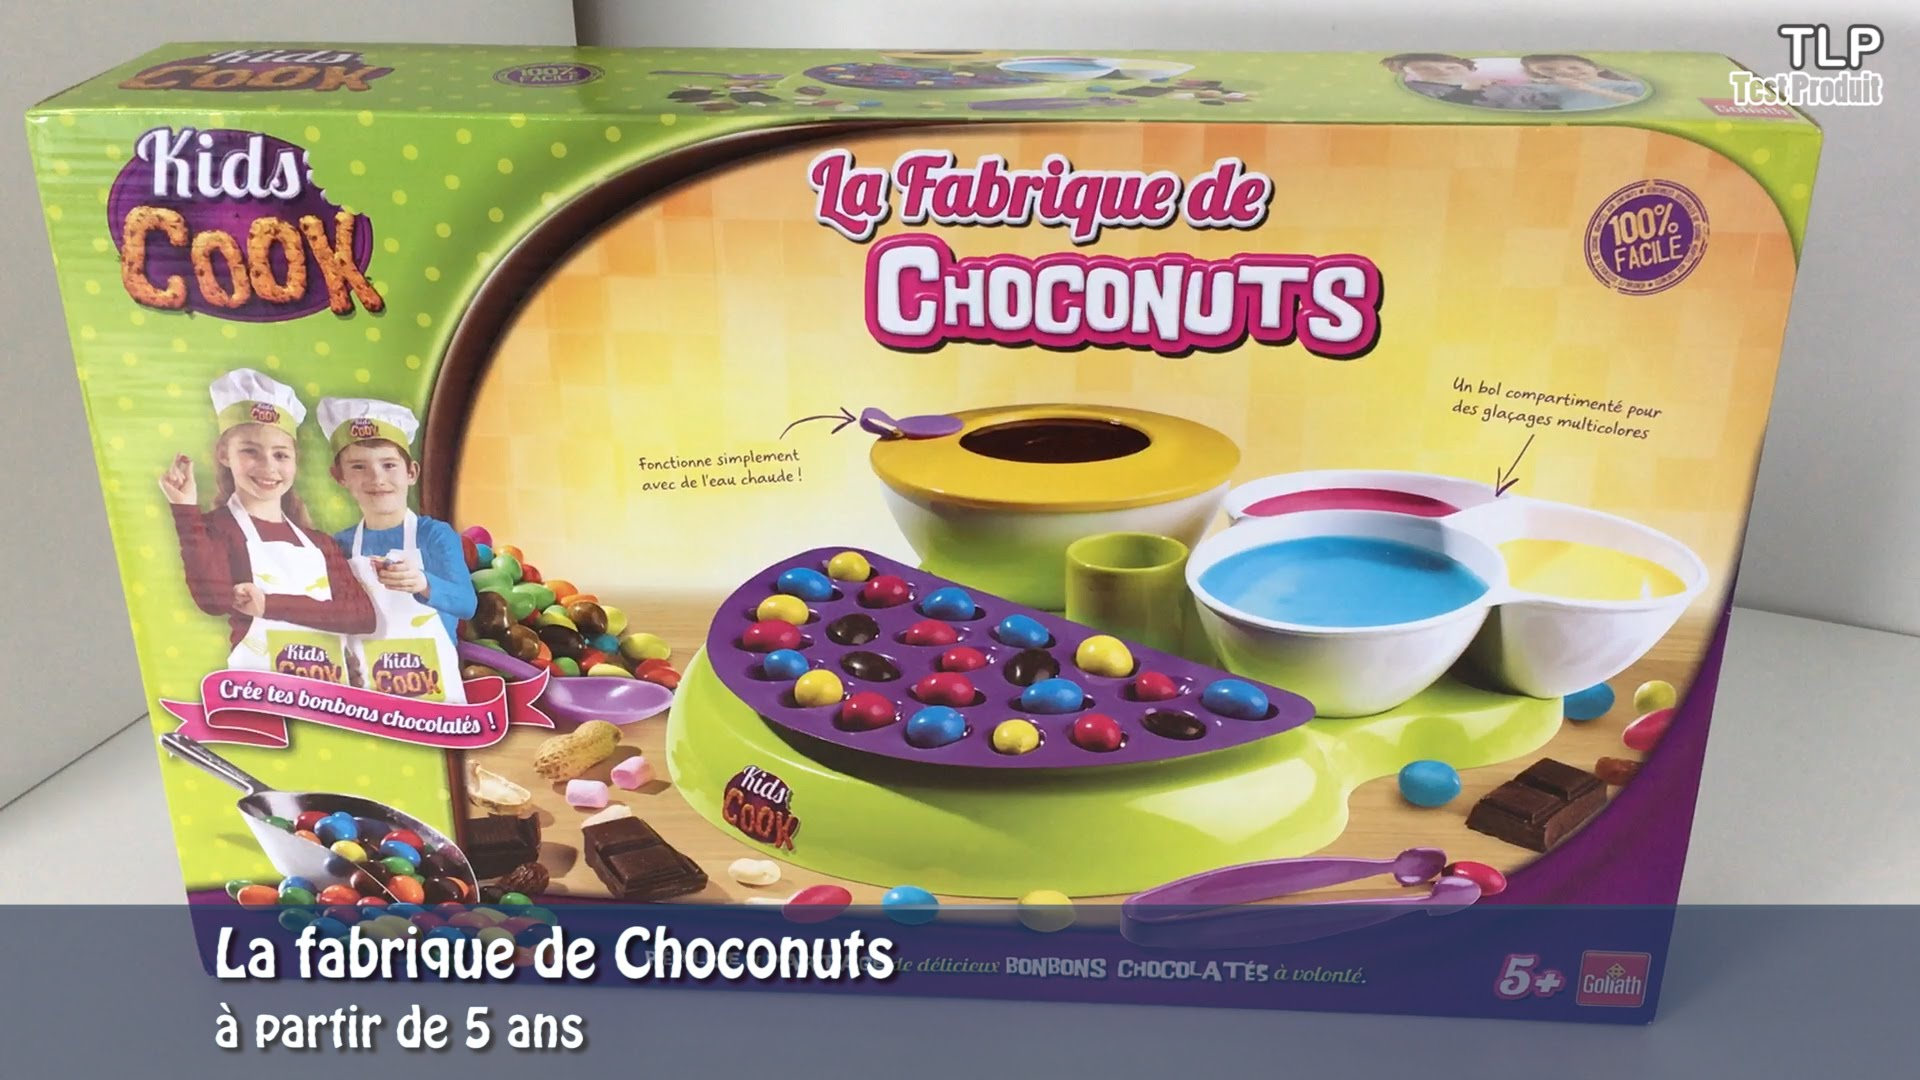 la fabrique de choconuts